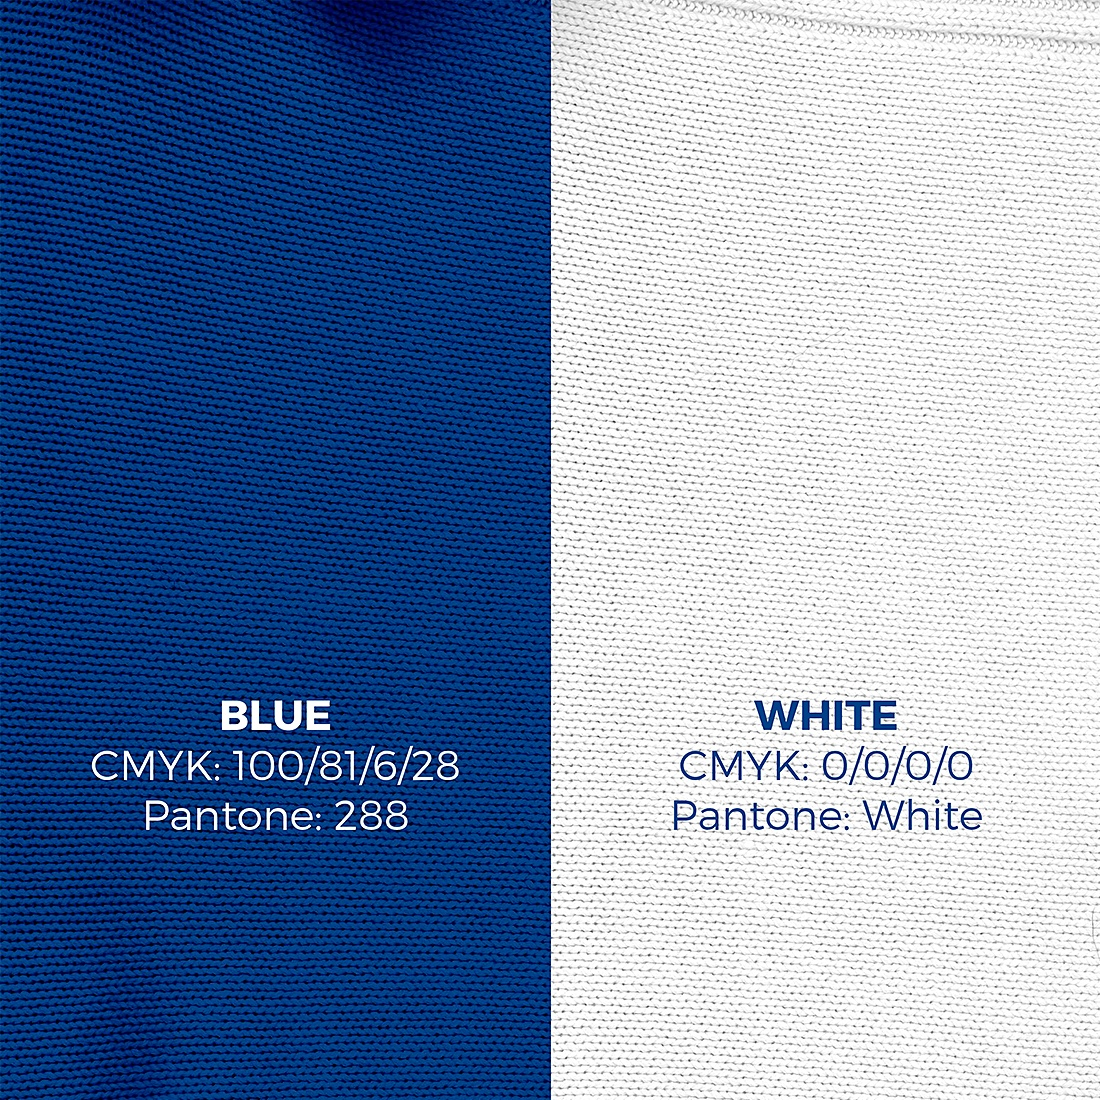 Millwall proposal of colours